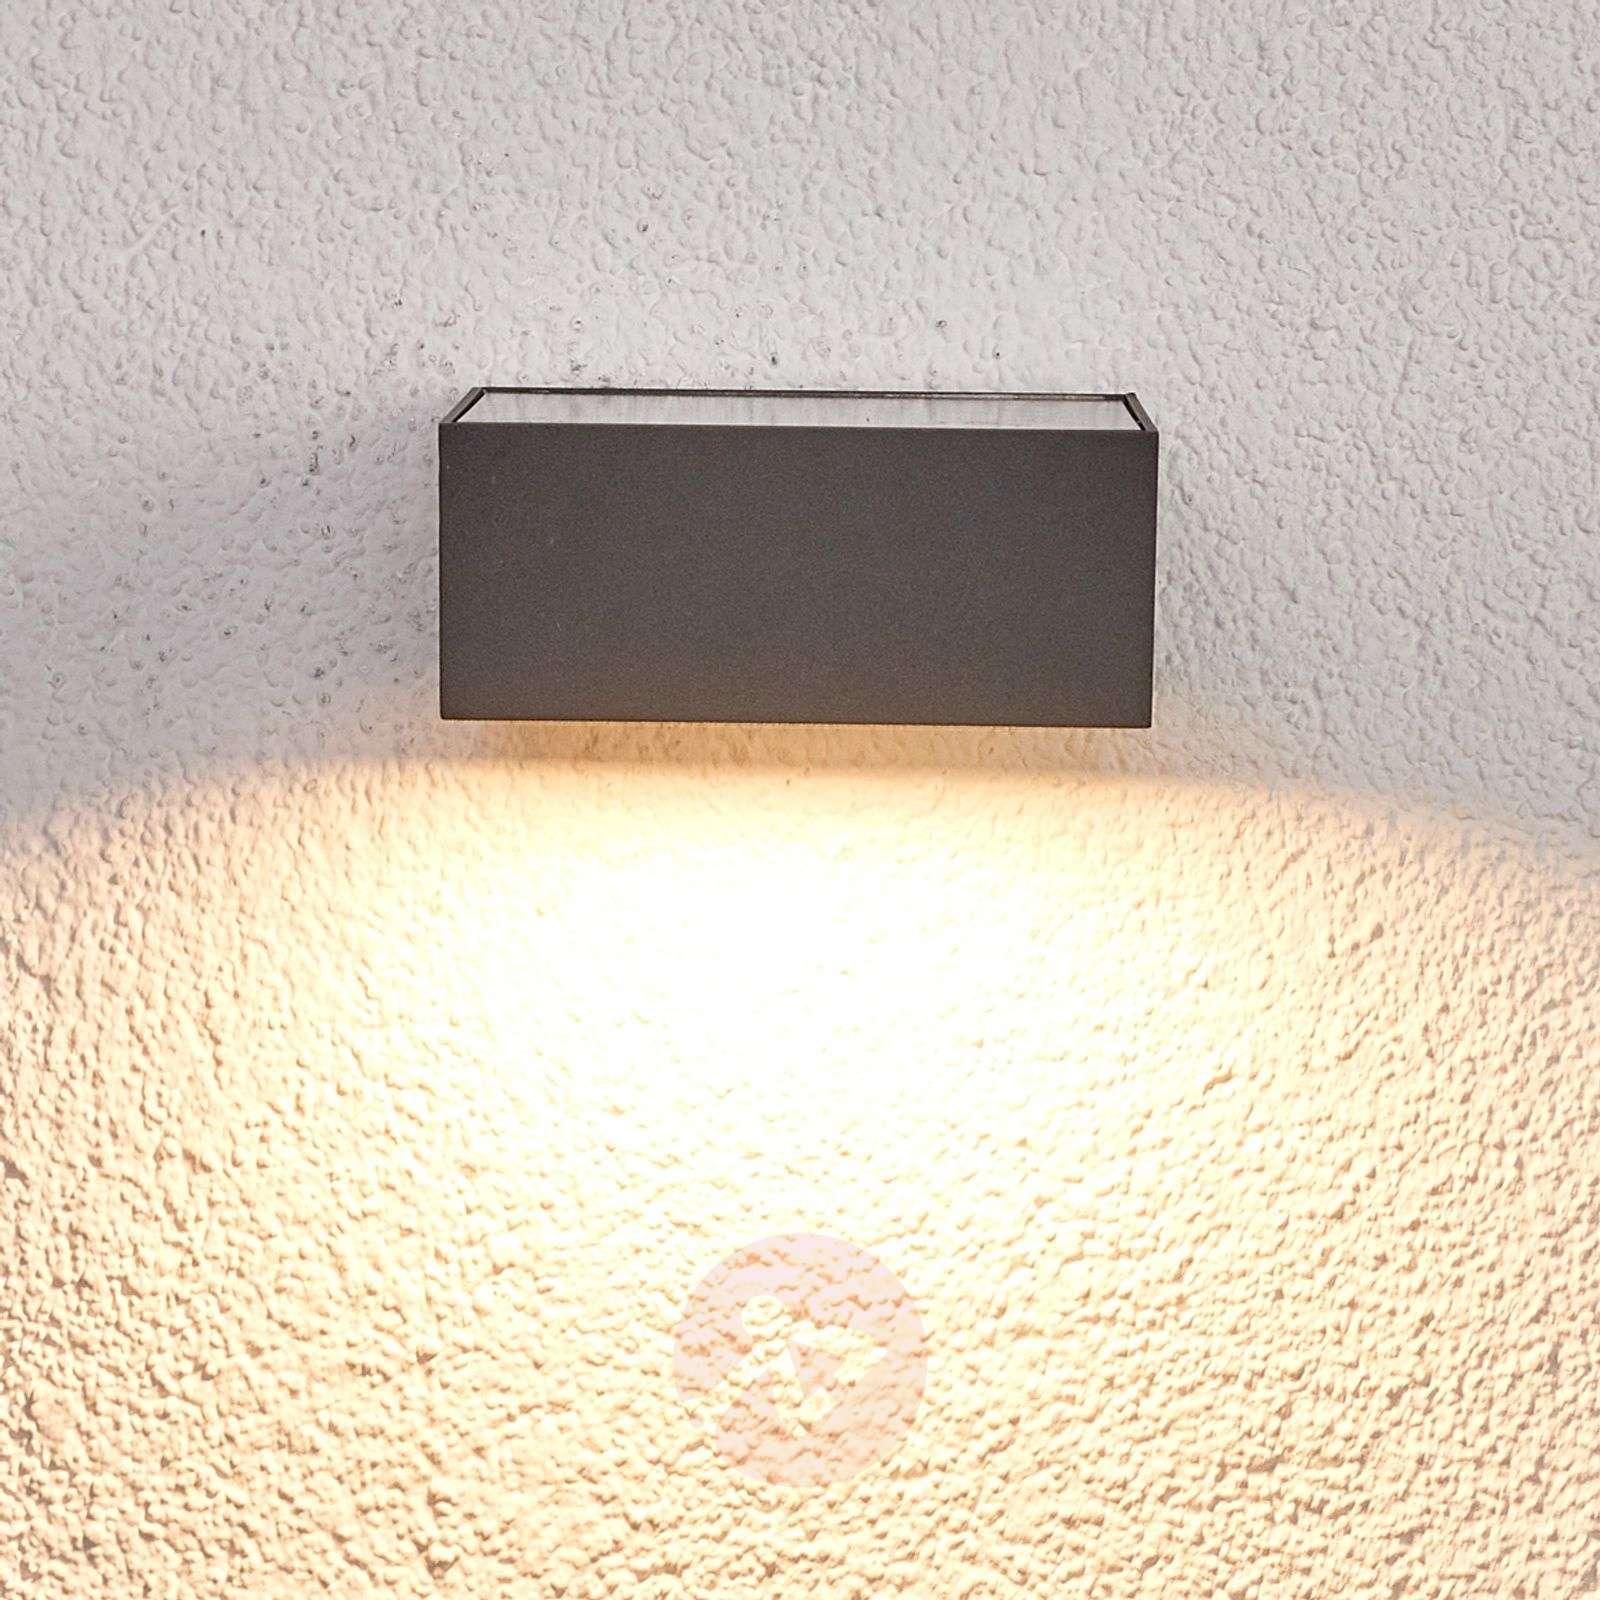 Solar-powered LED outdoor wall light Mahra, sensor-9619074-01